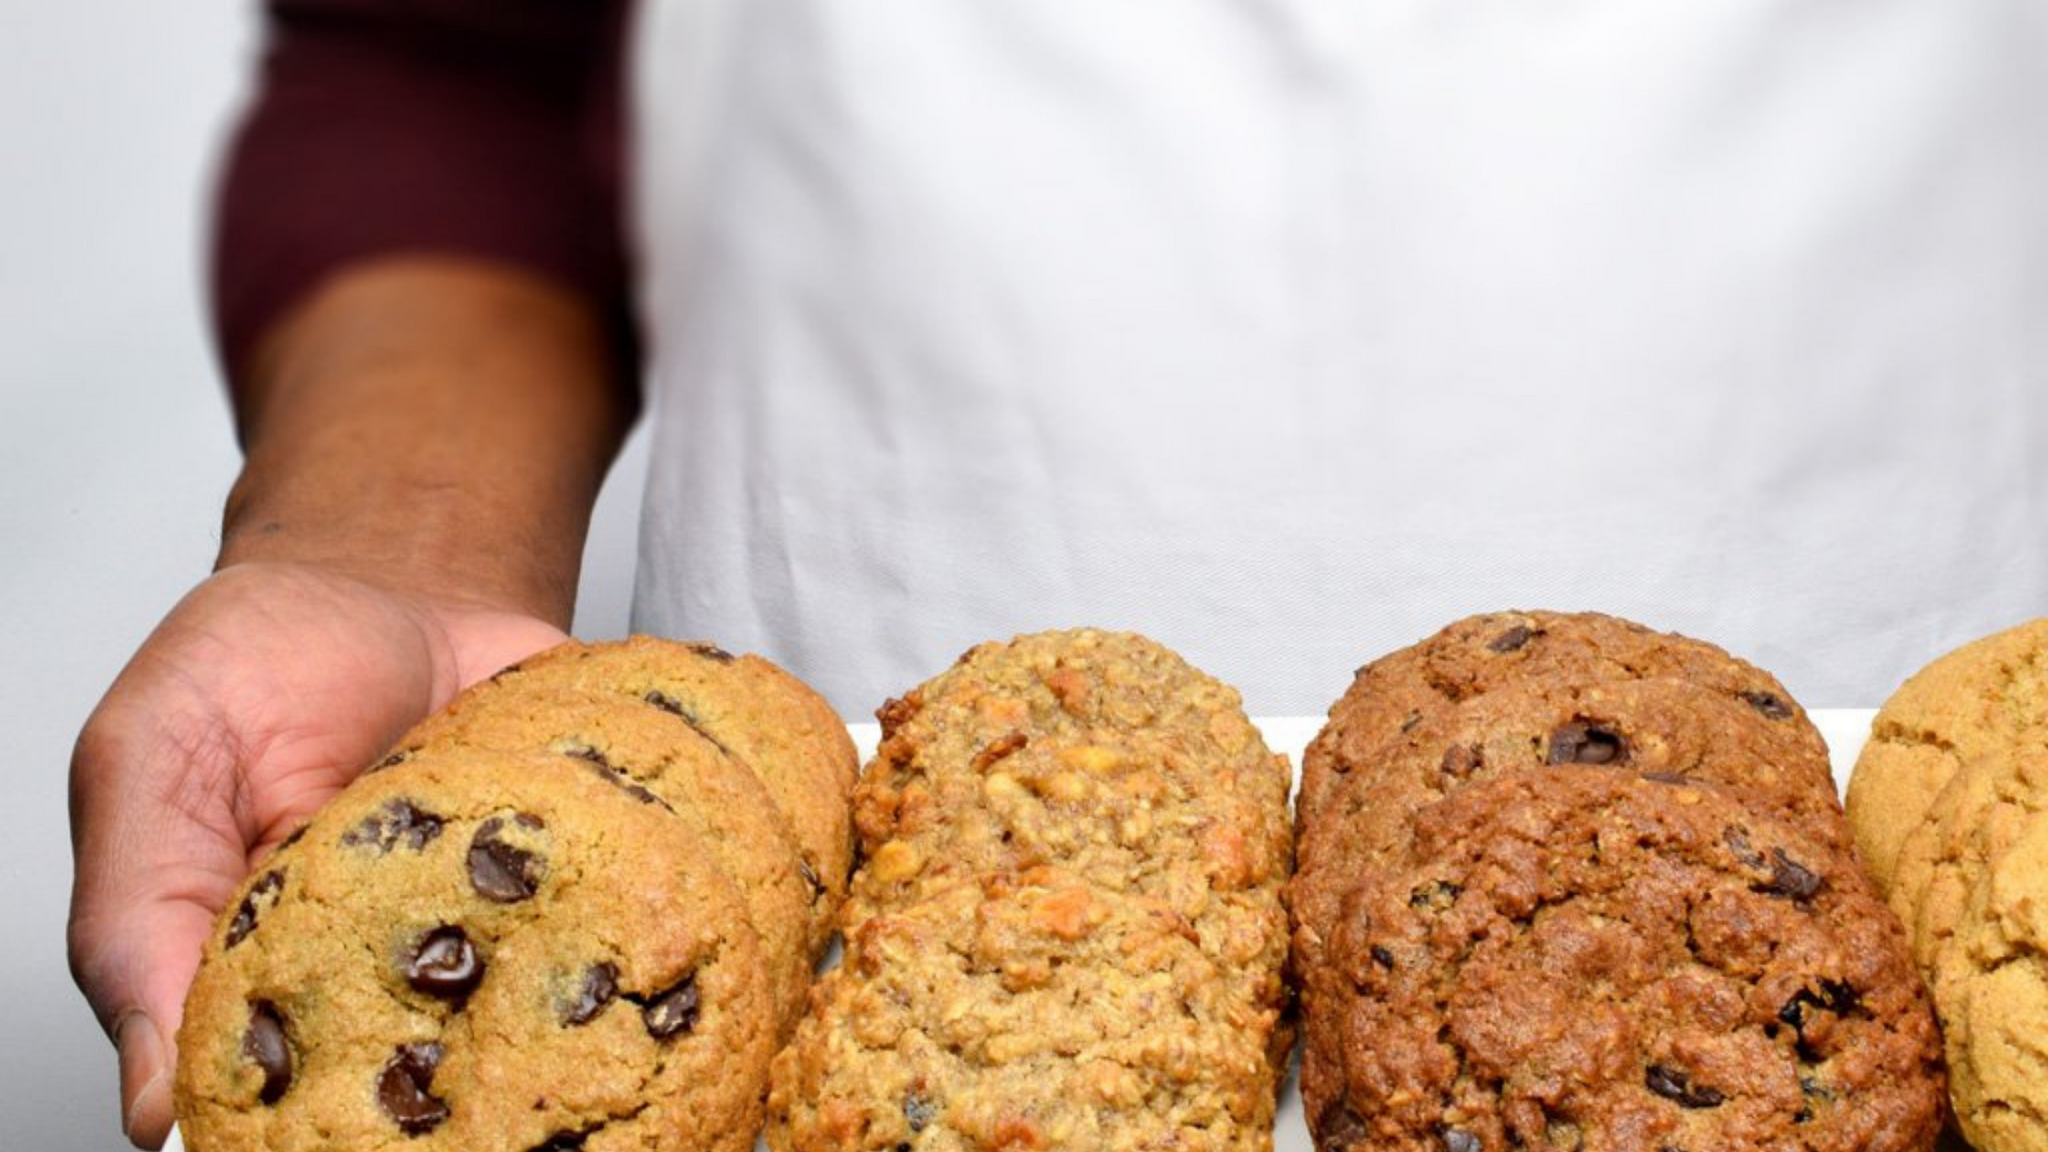 Farmers' Markets To Online Store: How One Man's Passion For Cookies Led To a Business And a Community #ClientSpotlight